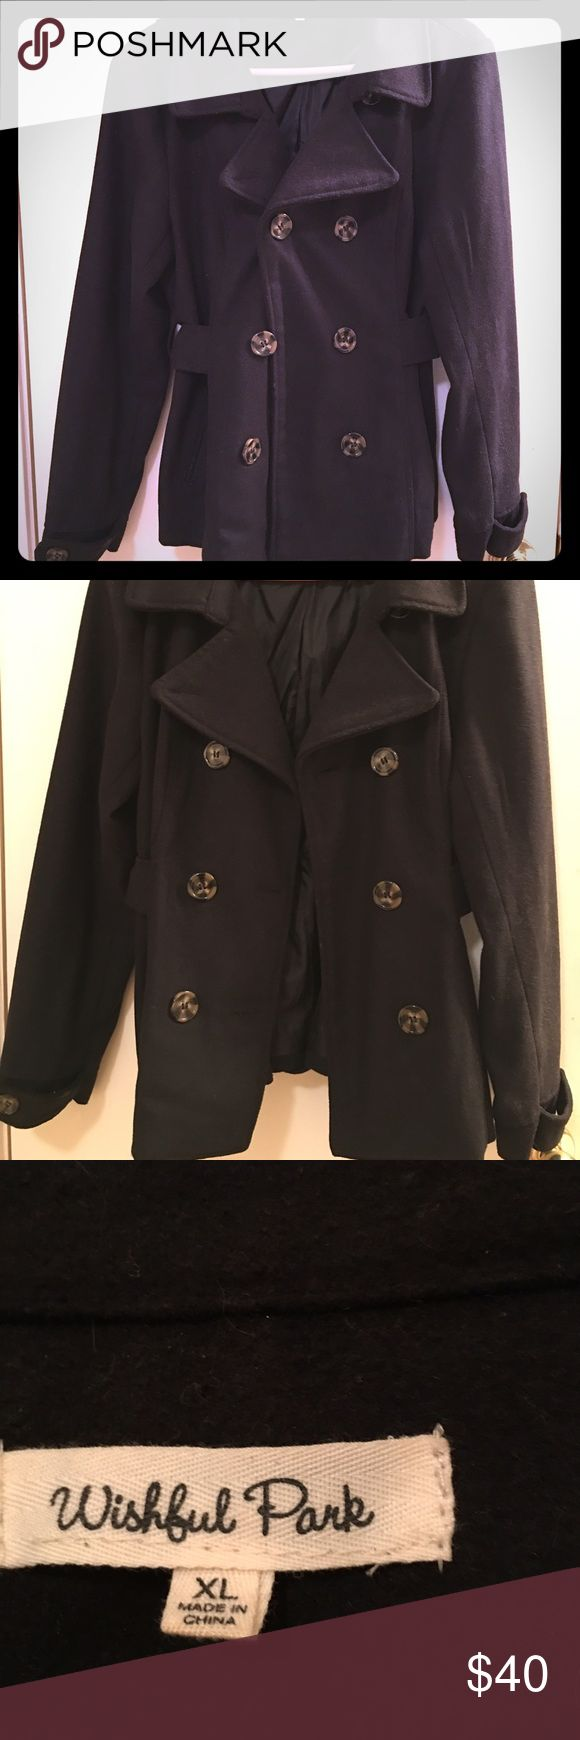 Black Pea Coat **Like New** Black pea coat in excellent (like new) condition. Bought brand new at the end of last winter and worn only a few times.  Doesn't fit me this season.  Brand is Wishful Park. 100% Polyester. Jackets & Coats Pea Coats